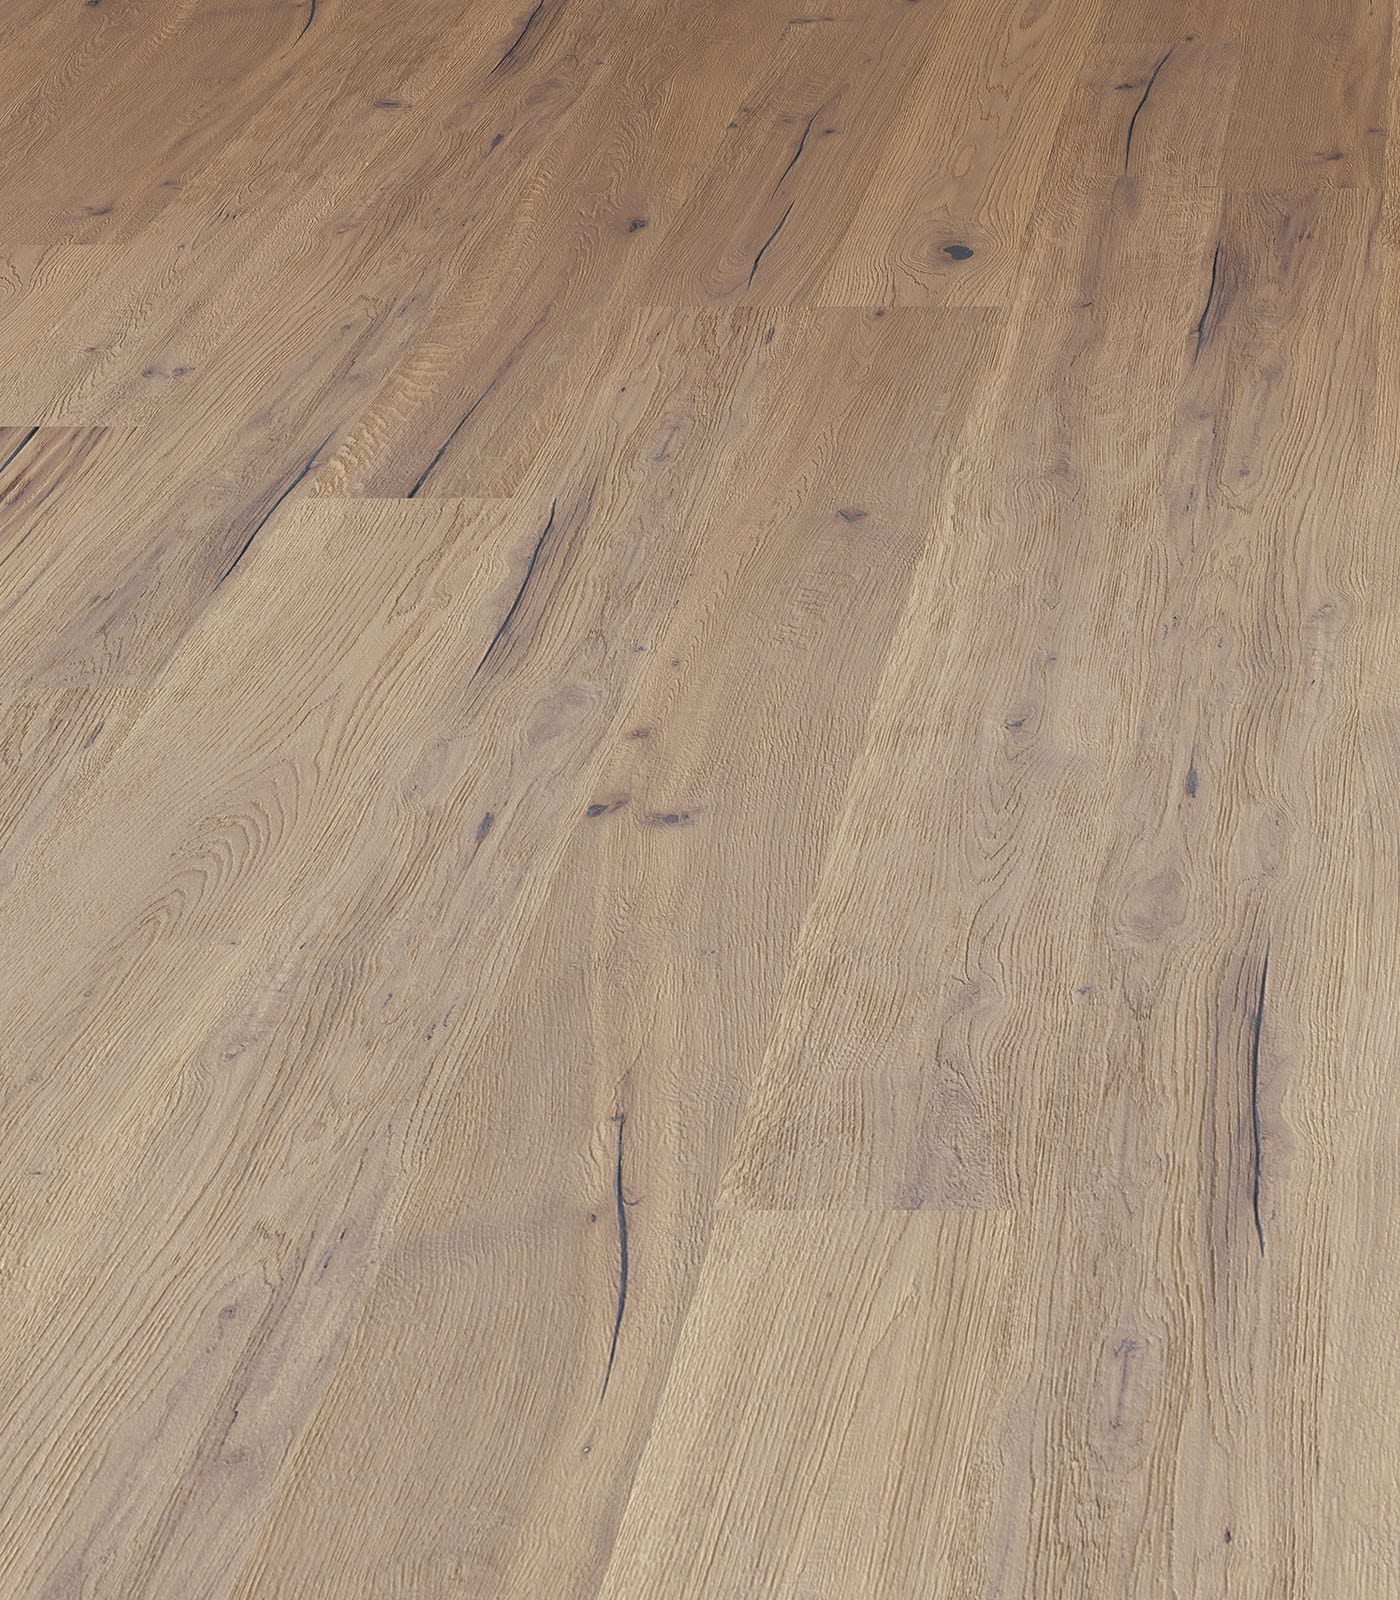 Ural Antique Collection European Oak Floors-angle